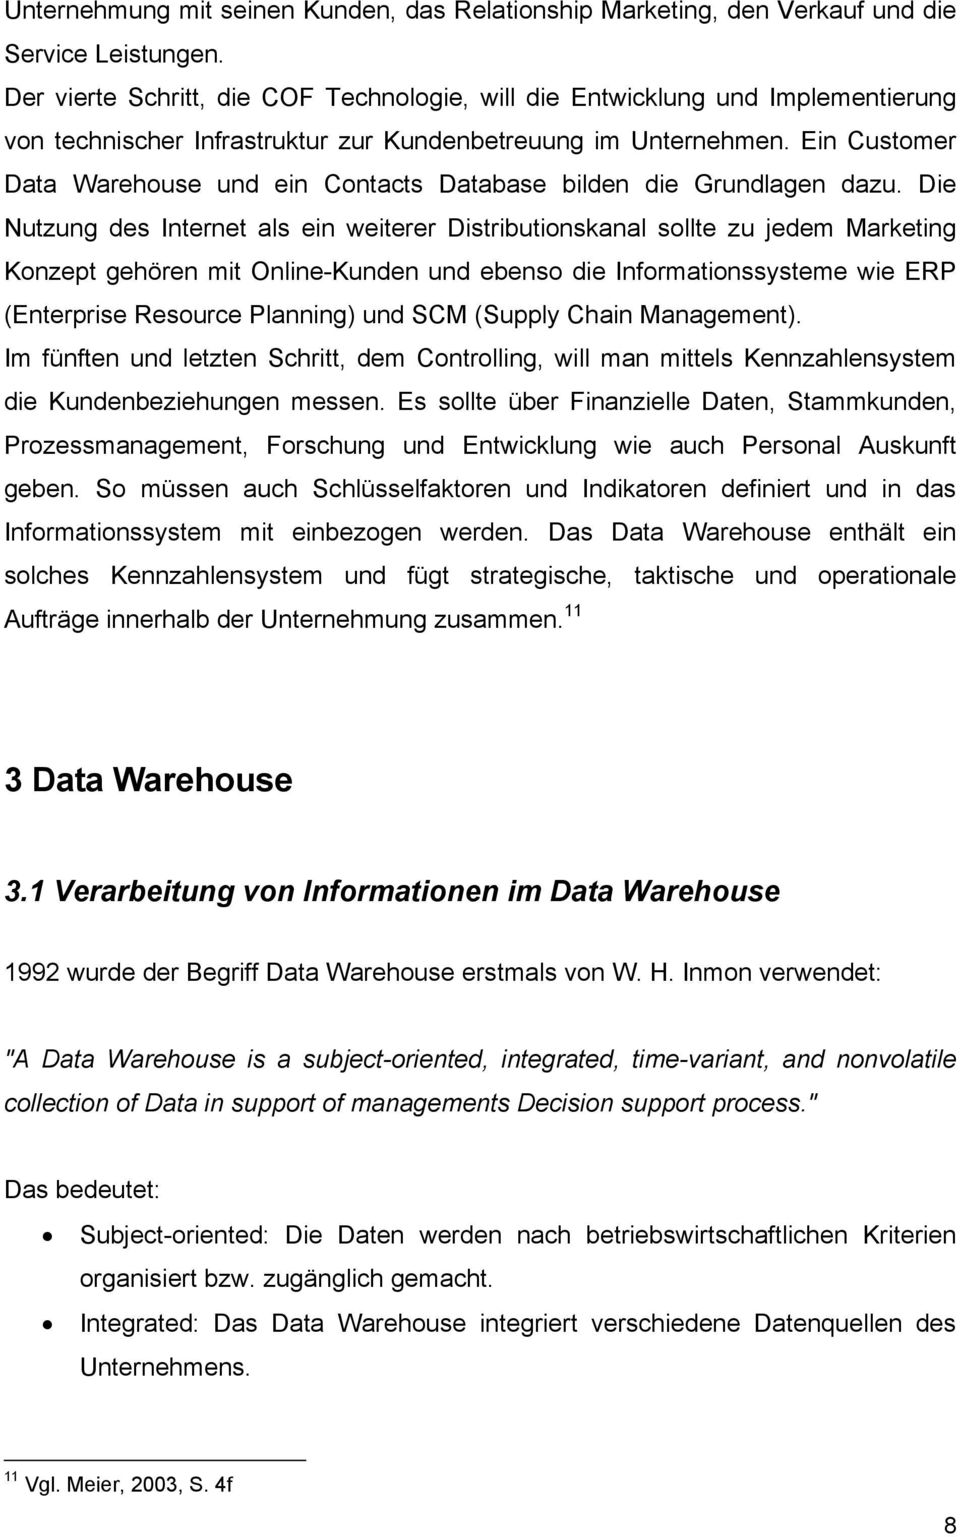 Ein Customer Data Warehouse und ein Contacts Database bilden die Grundlagen dazu.